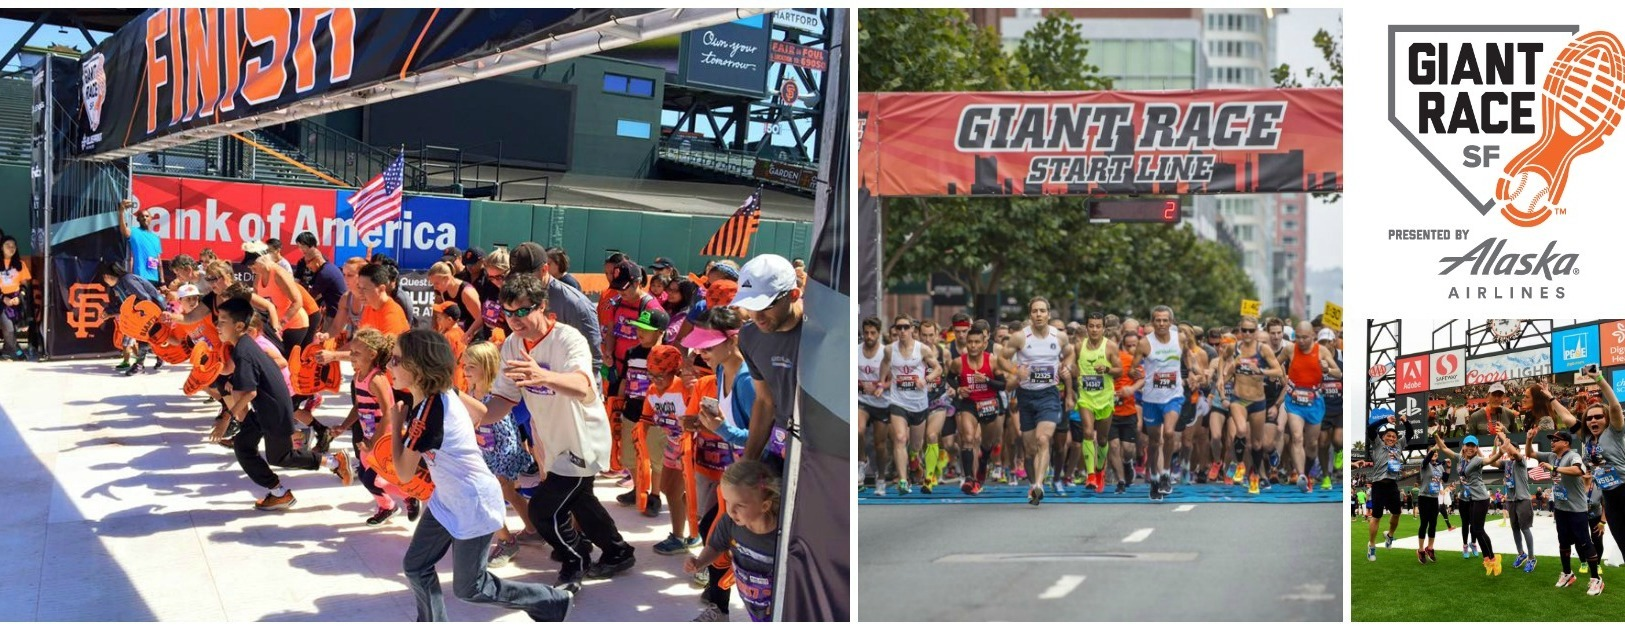 2018 San Francisco Giant Race